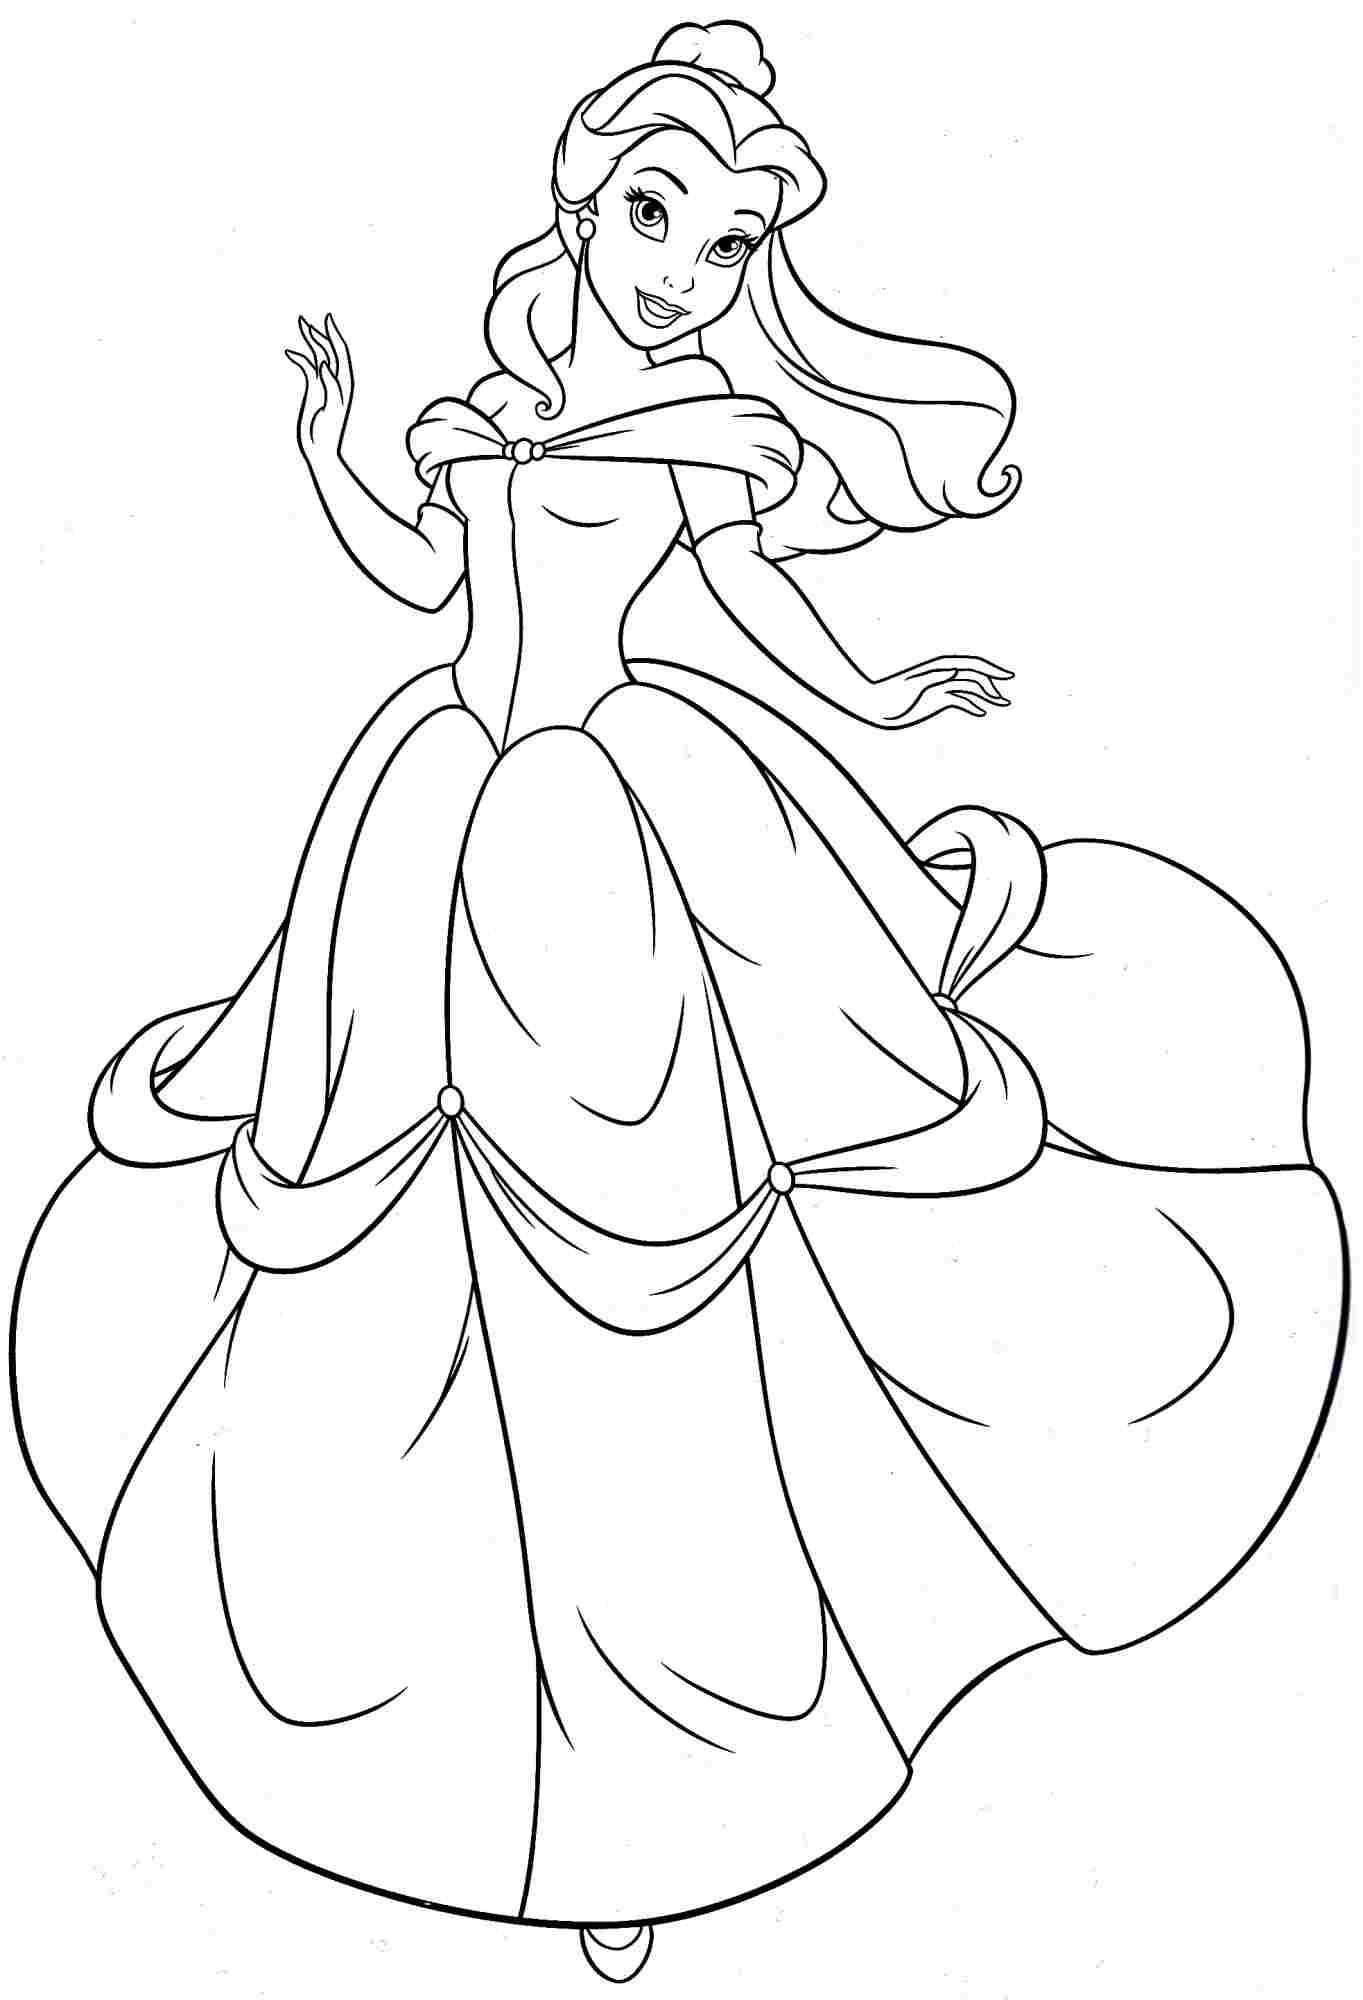 Princess belle coloring pages to download and print for free